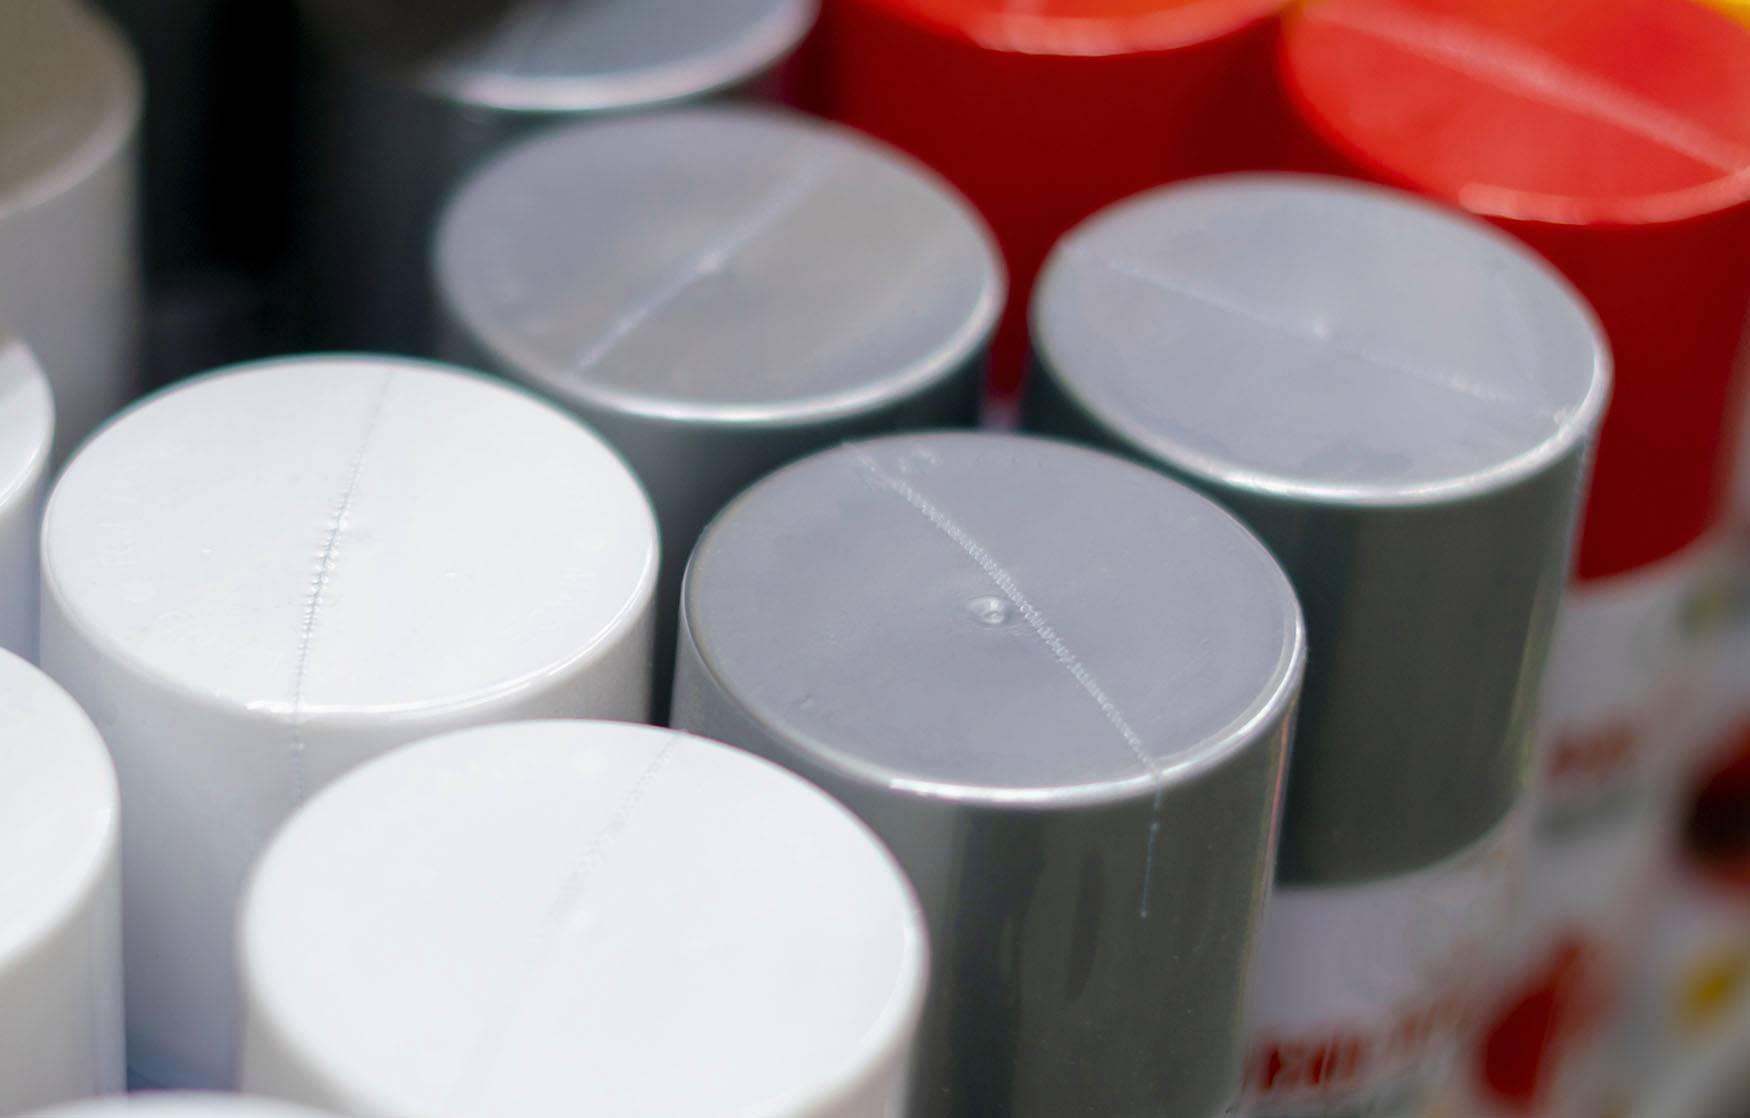 If you have any of this spray paint, stop using it immediately